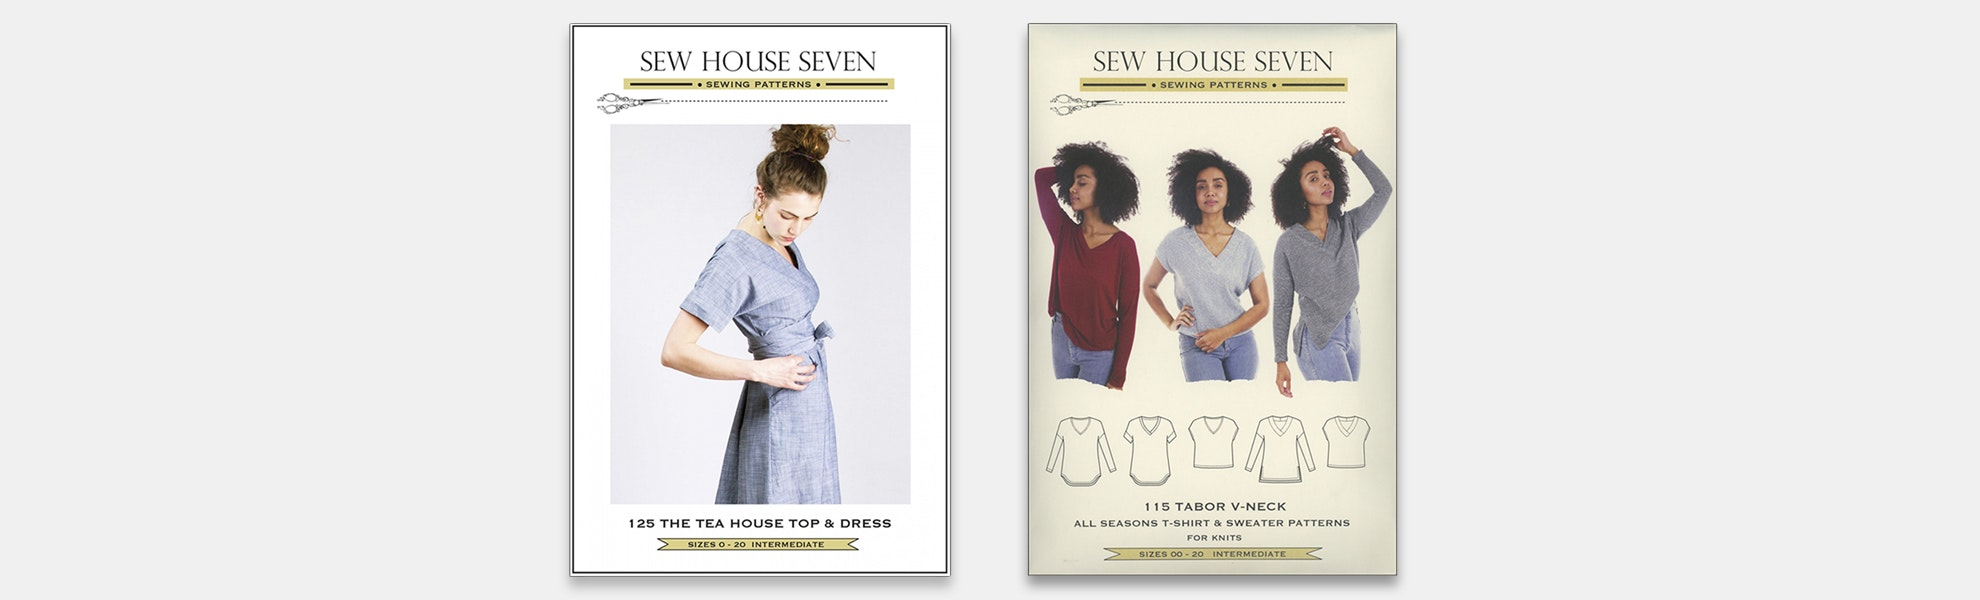 Sew House Seven Garment Patterns (2-Pack)